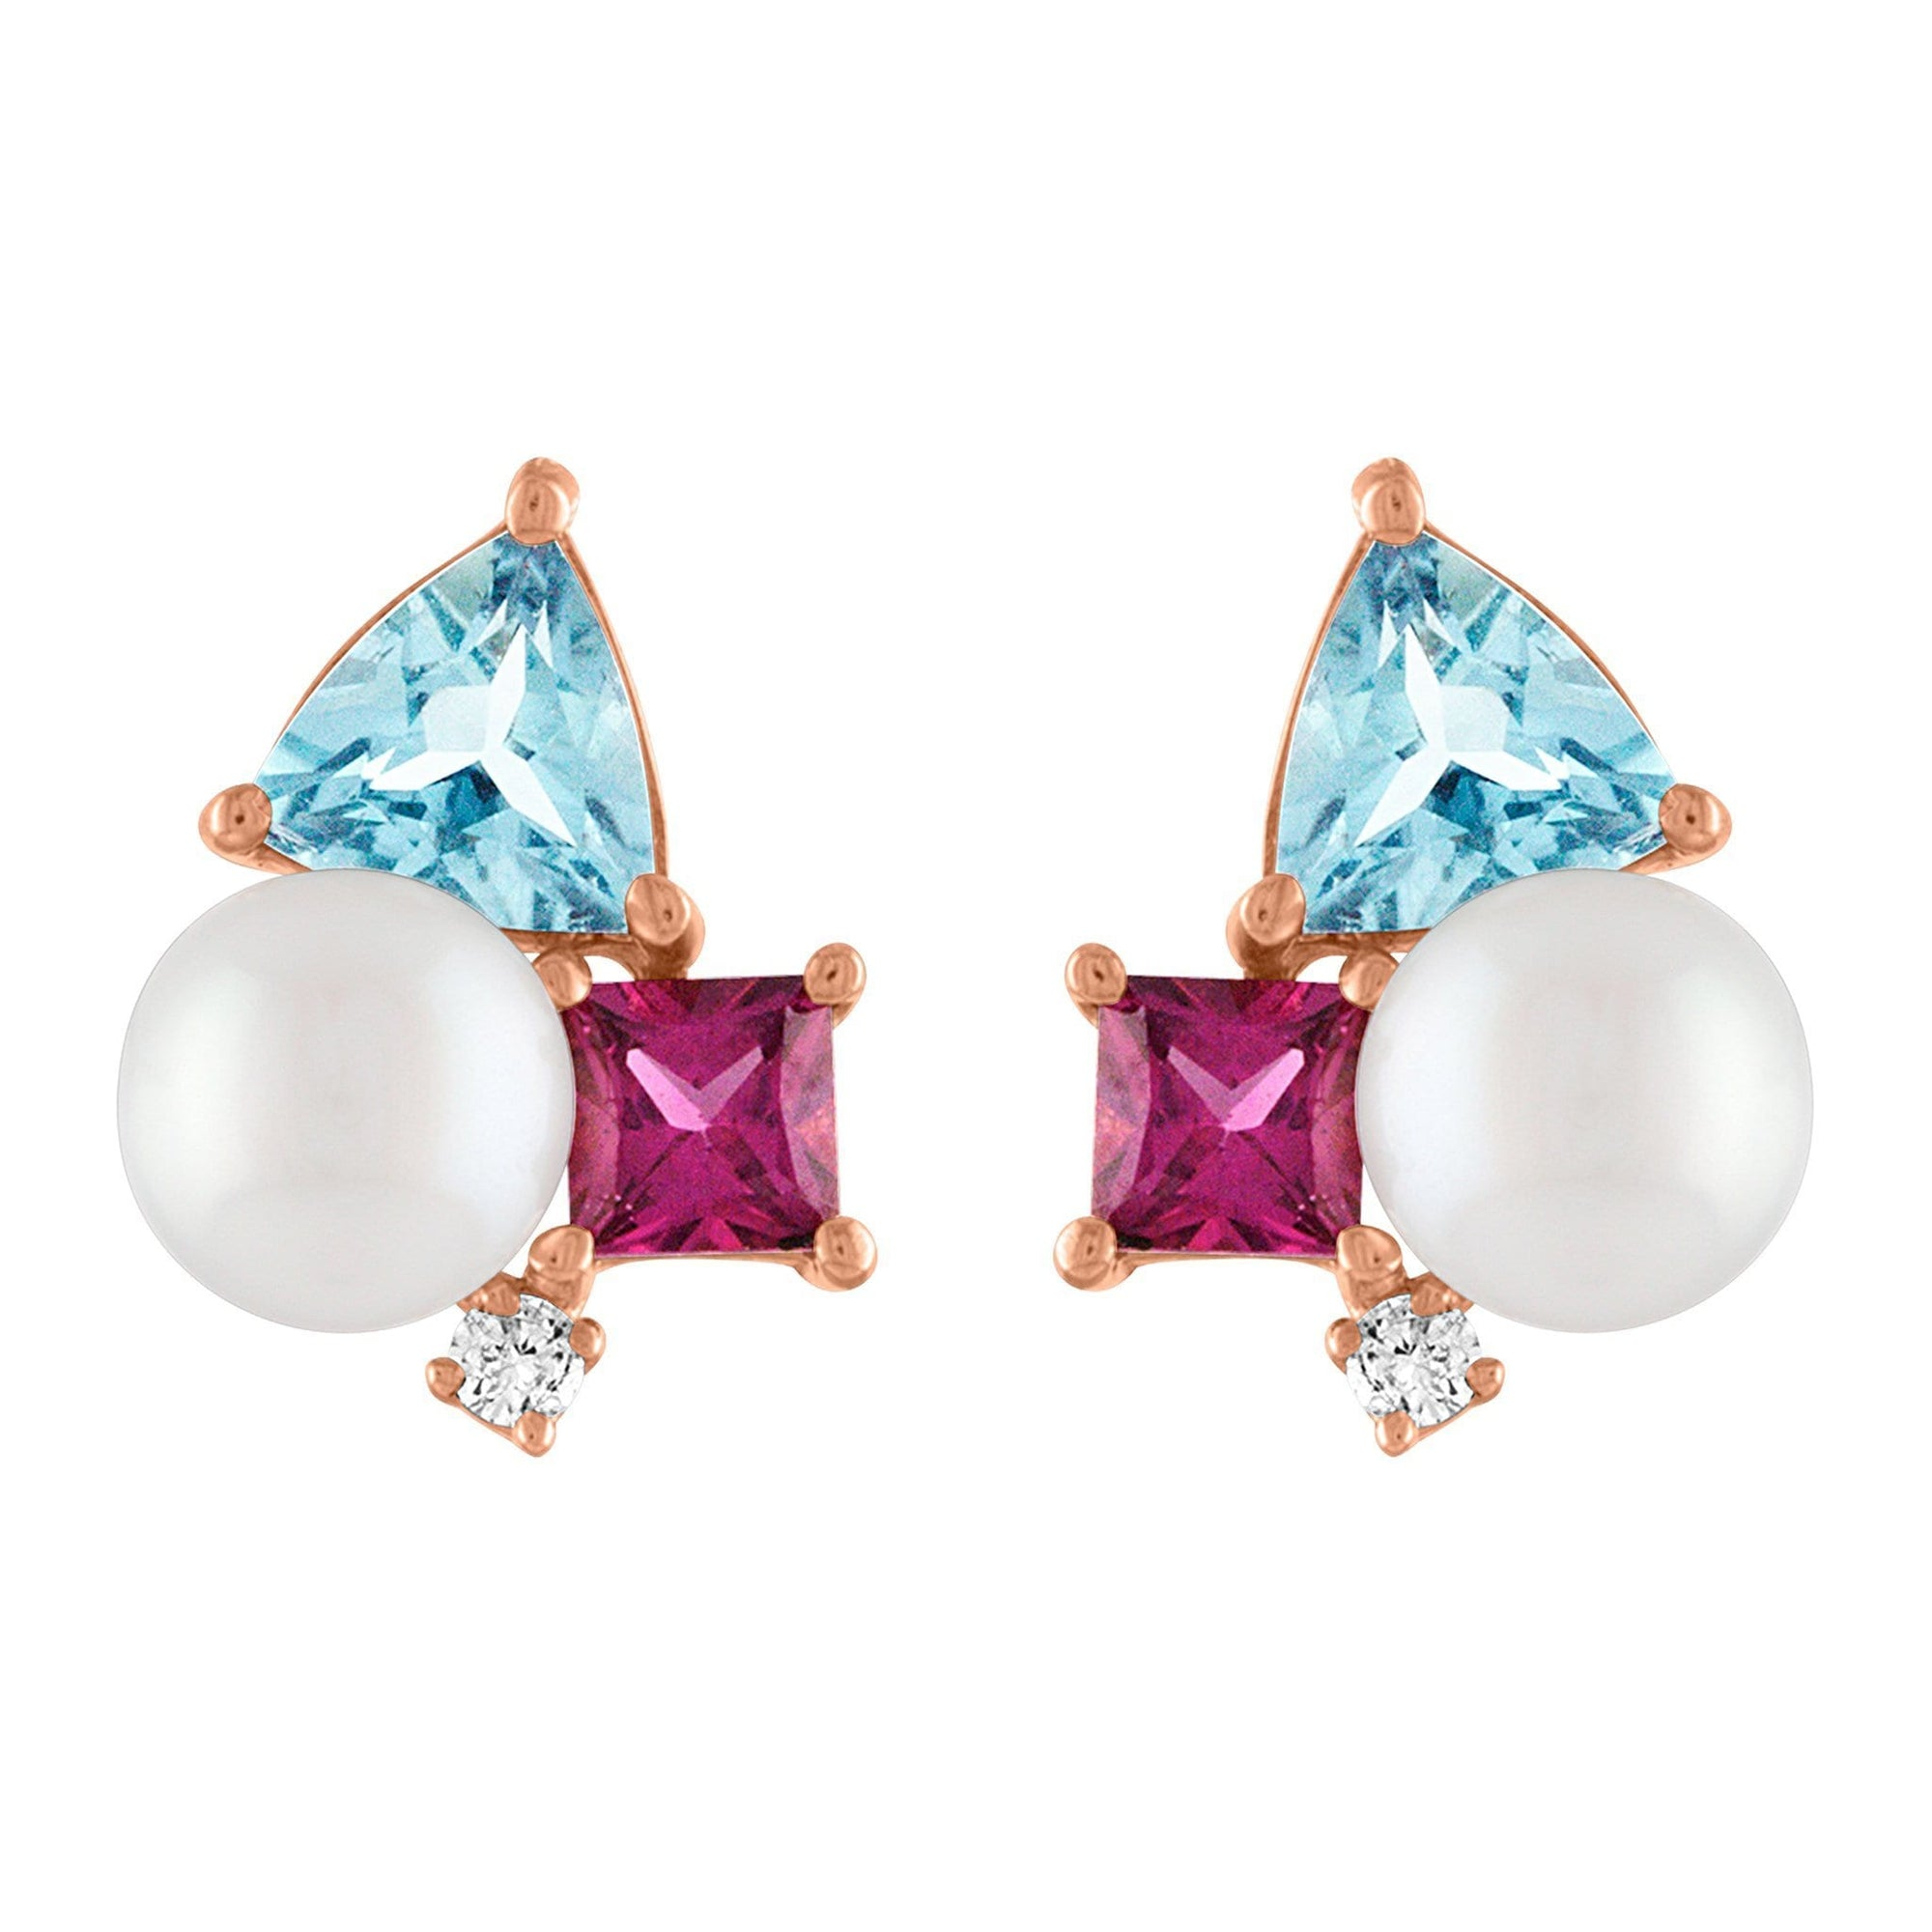 Luna Stud Earrings: 14k Rose Gold, Pearl, Blue Topaz, Rhodolite, Diamonds